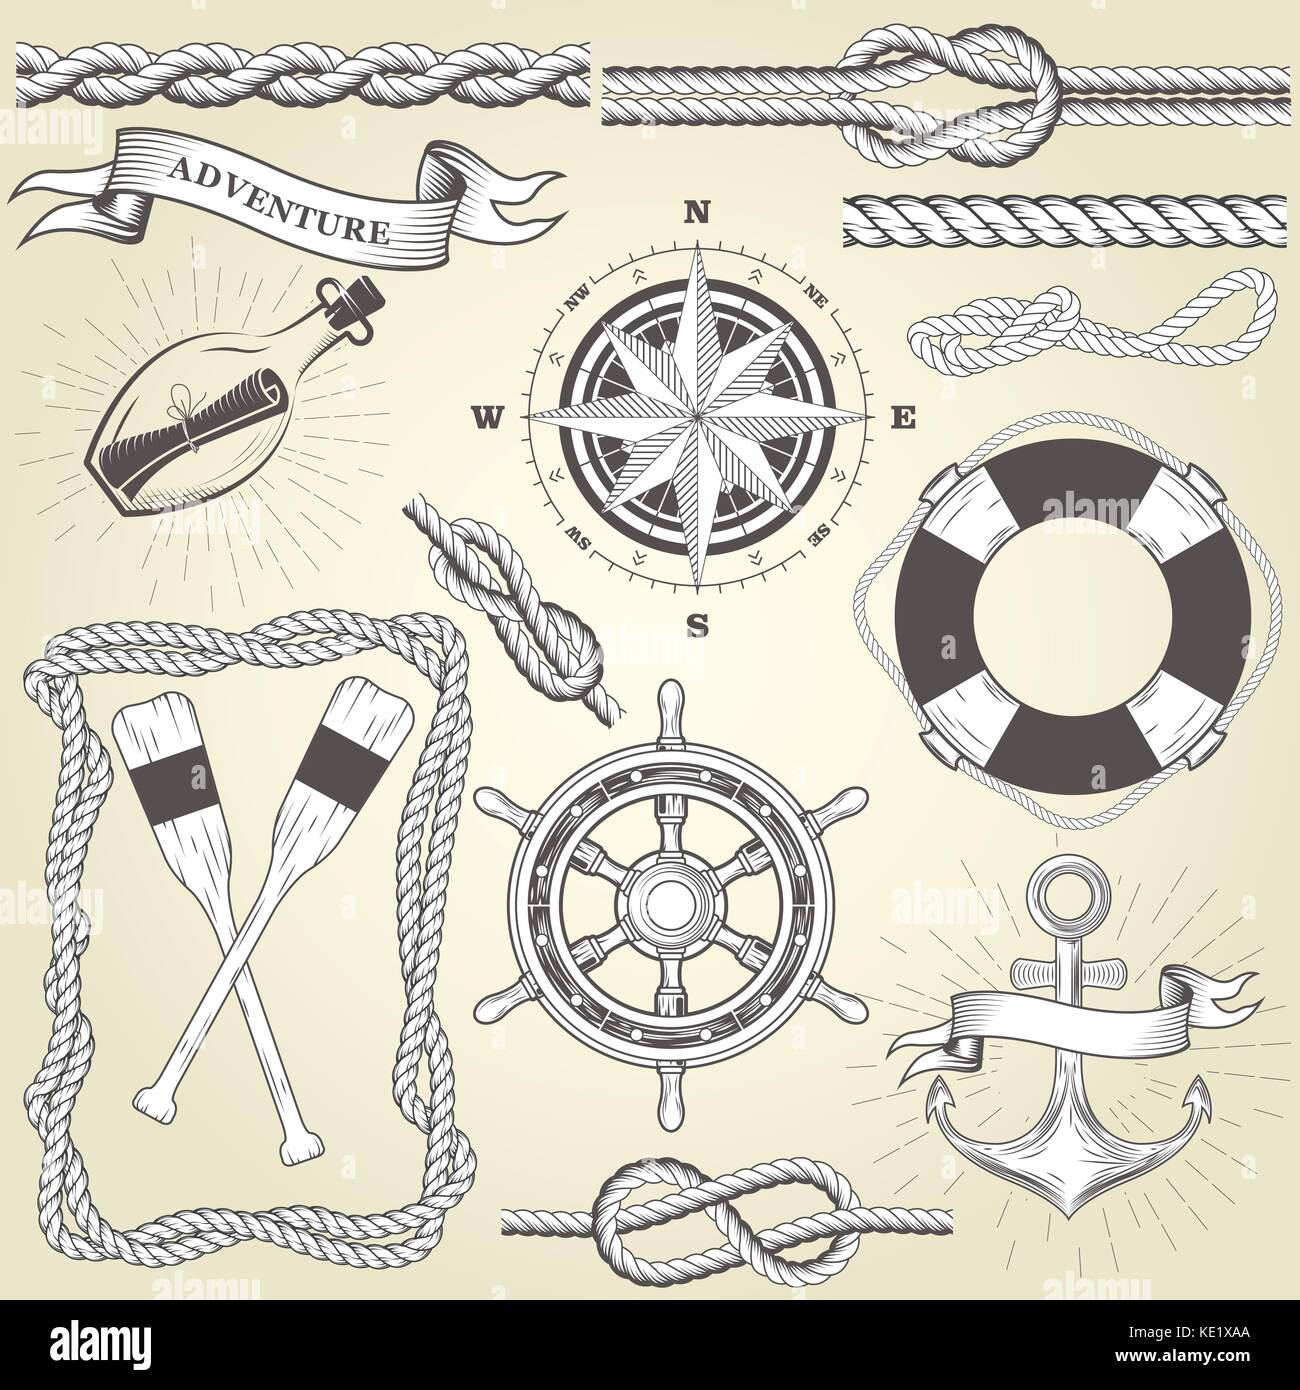 Vintage seafaring elements - steering wheel, oars, rope frame and knots - Stock Image